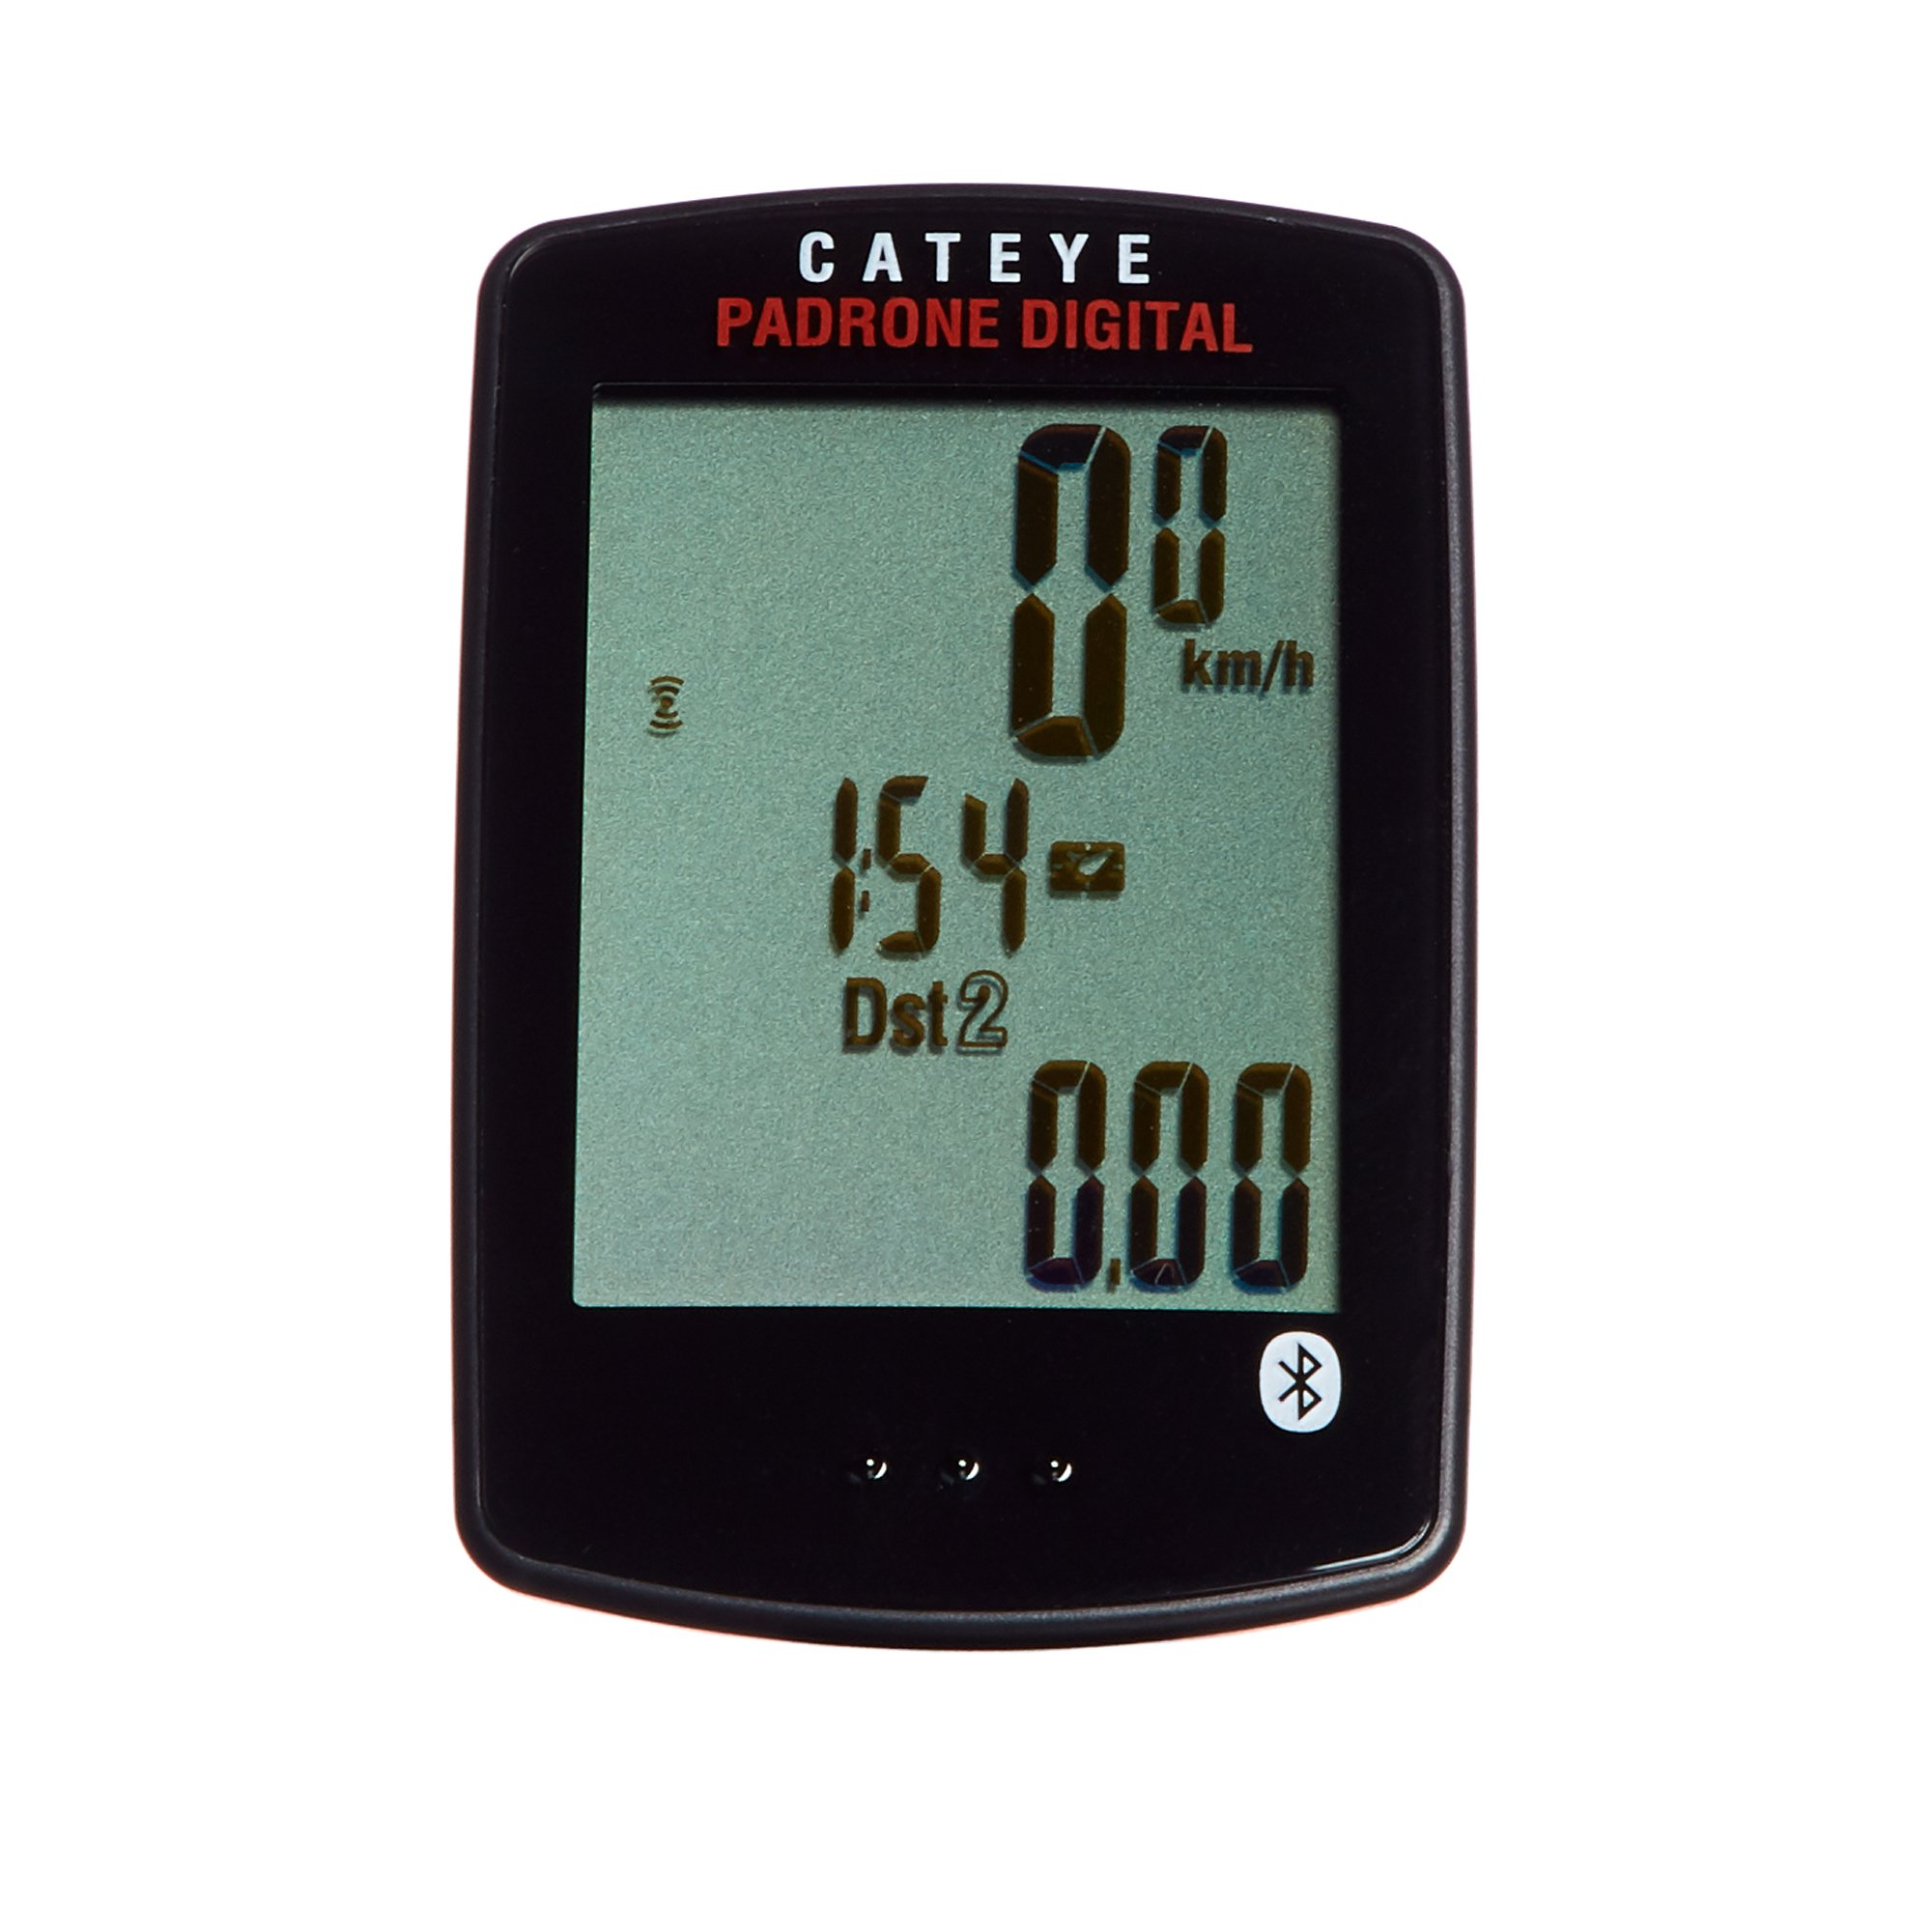 CAT EYE   Padrone Digital Double Speed and Cadence Bike Computer, Black